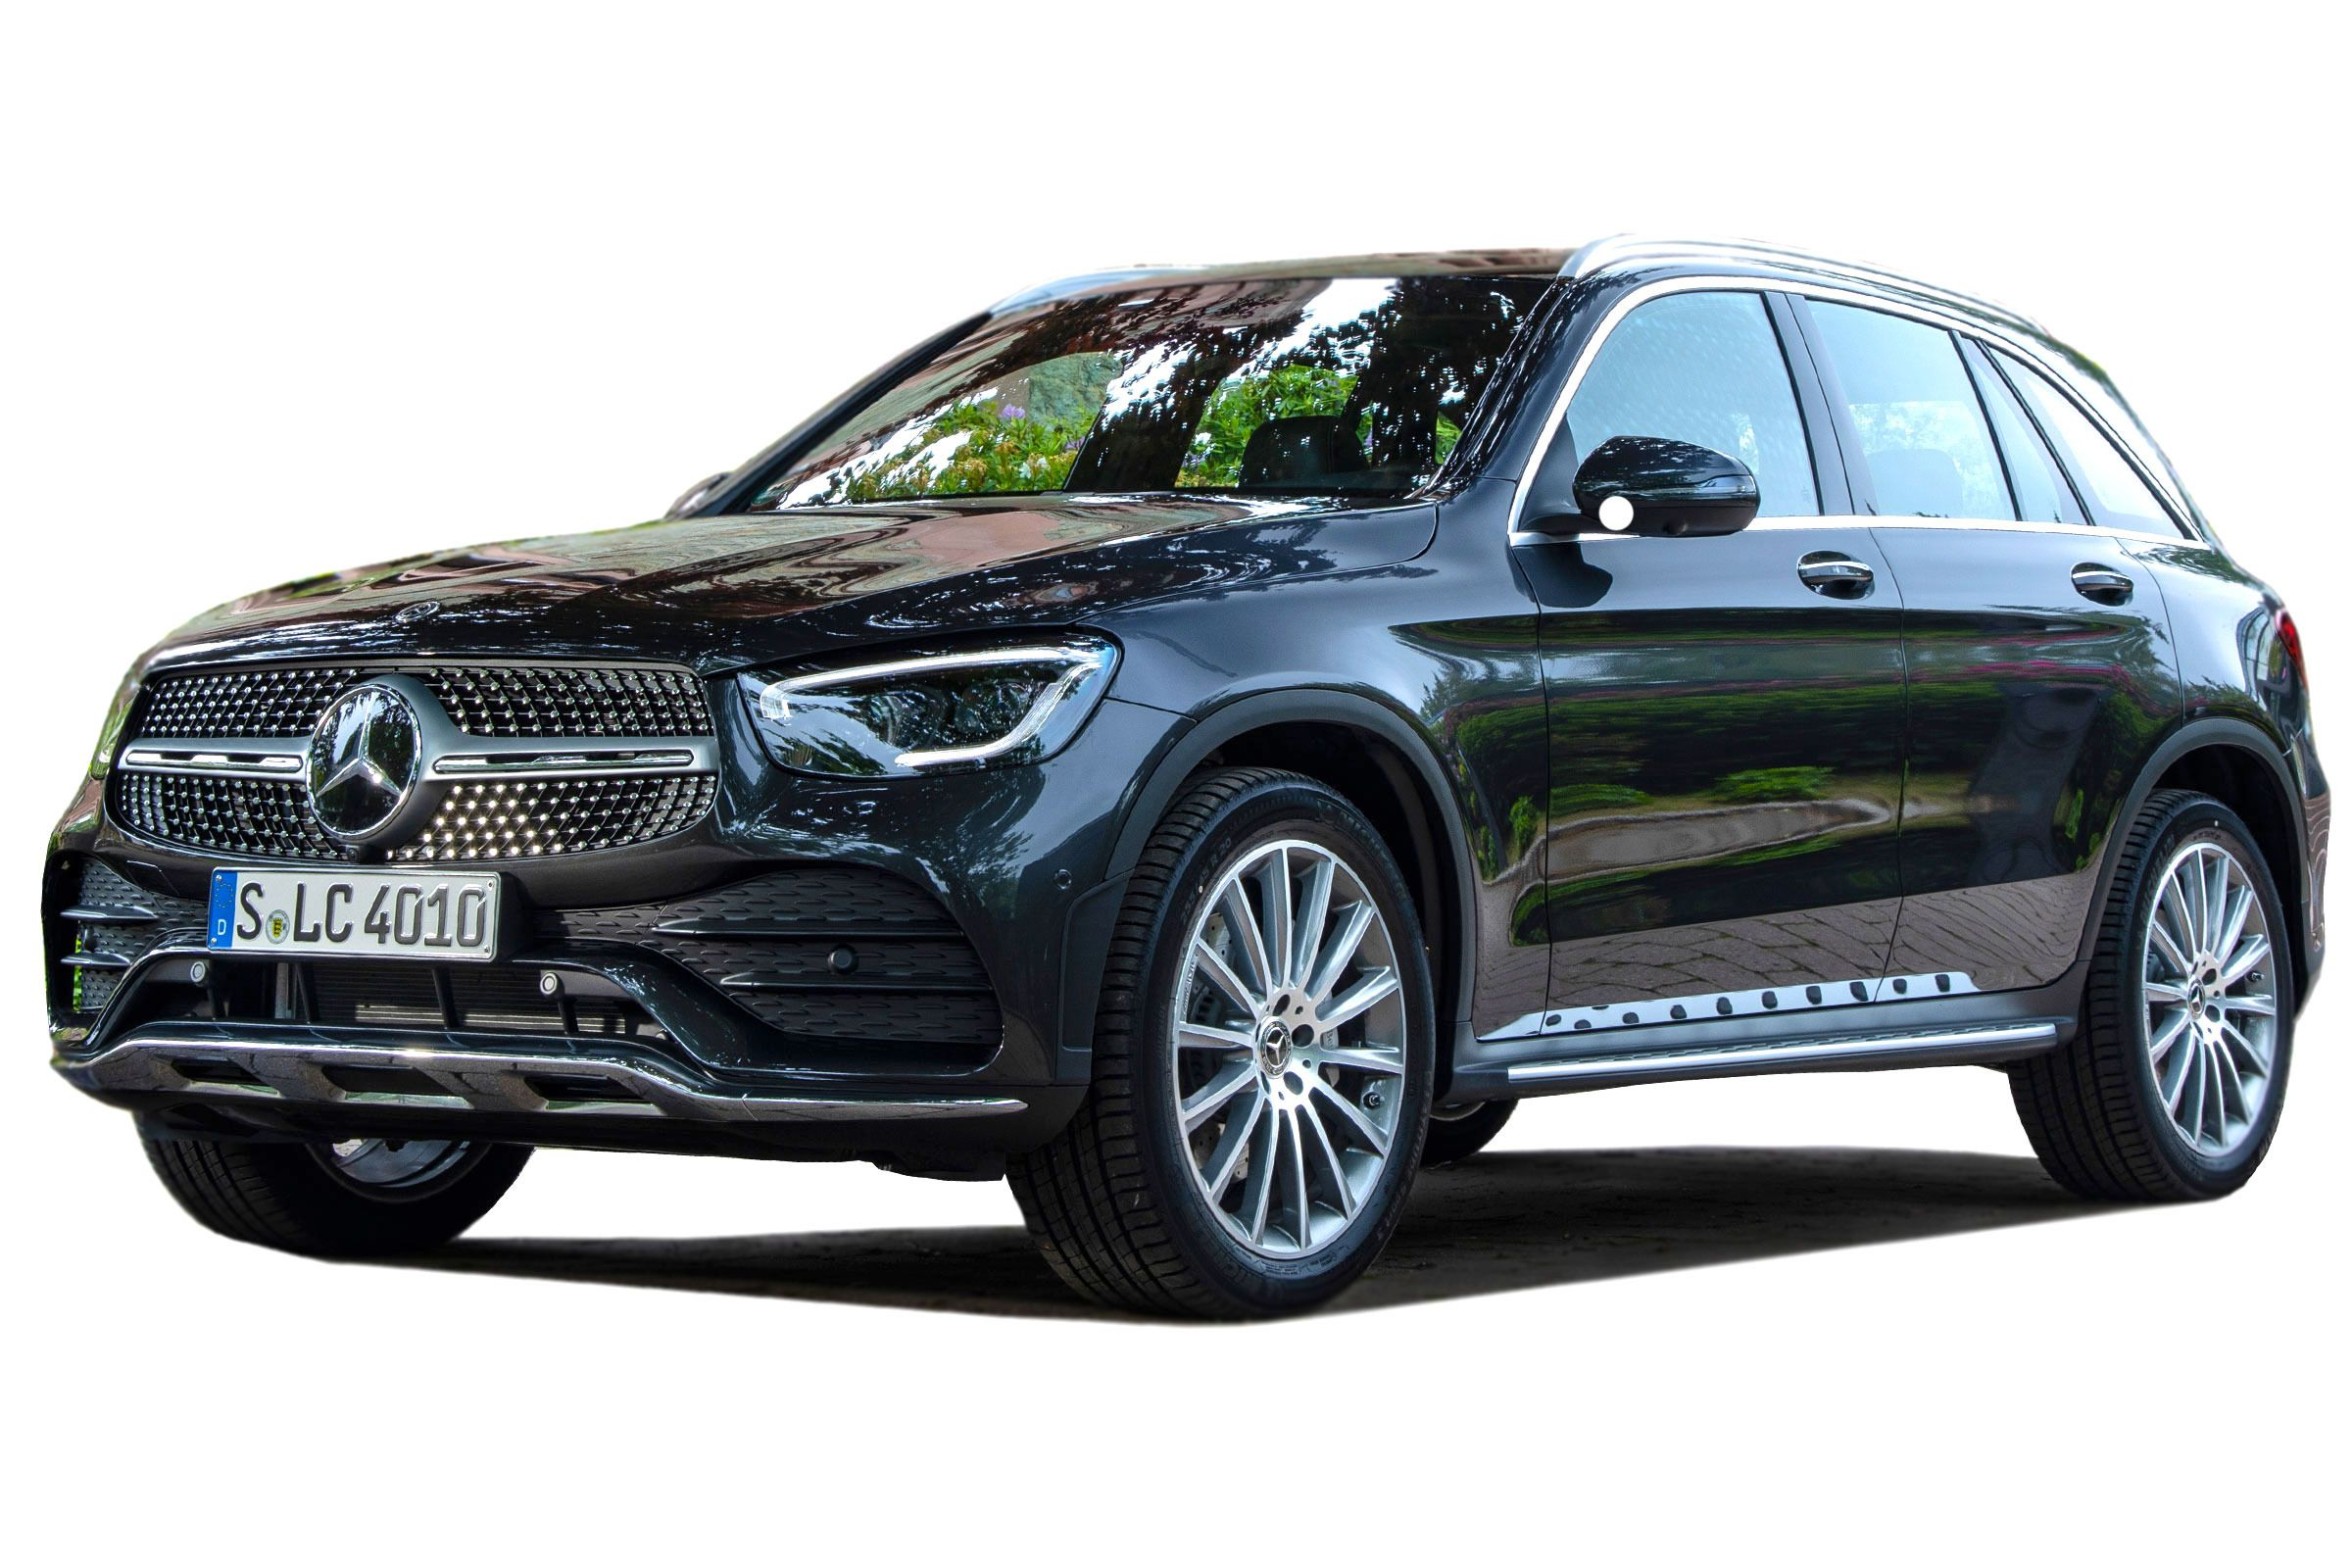 Mercedes Glc Suv 2019 Mpg Co2 Insurance Groups